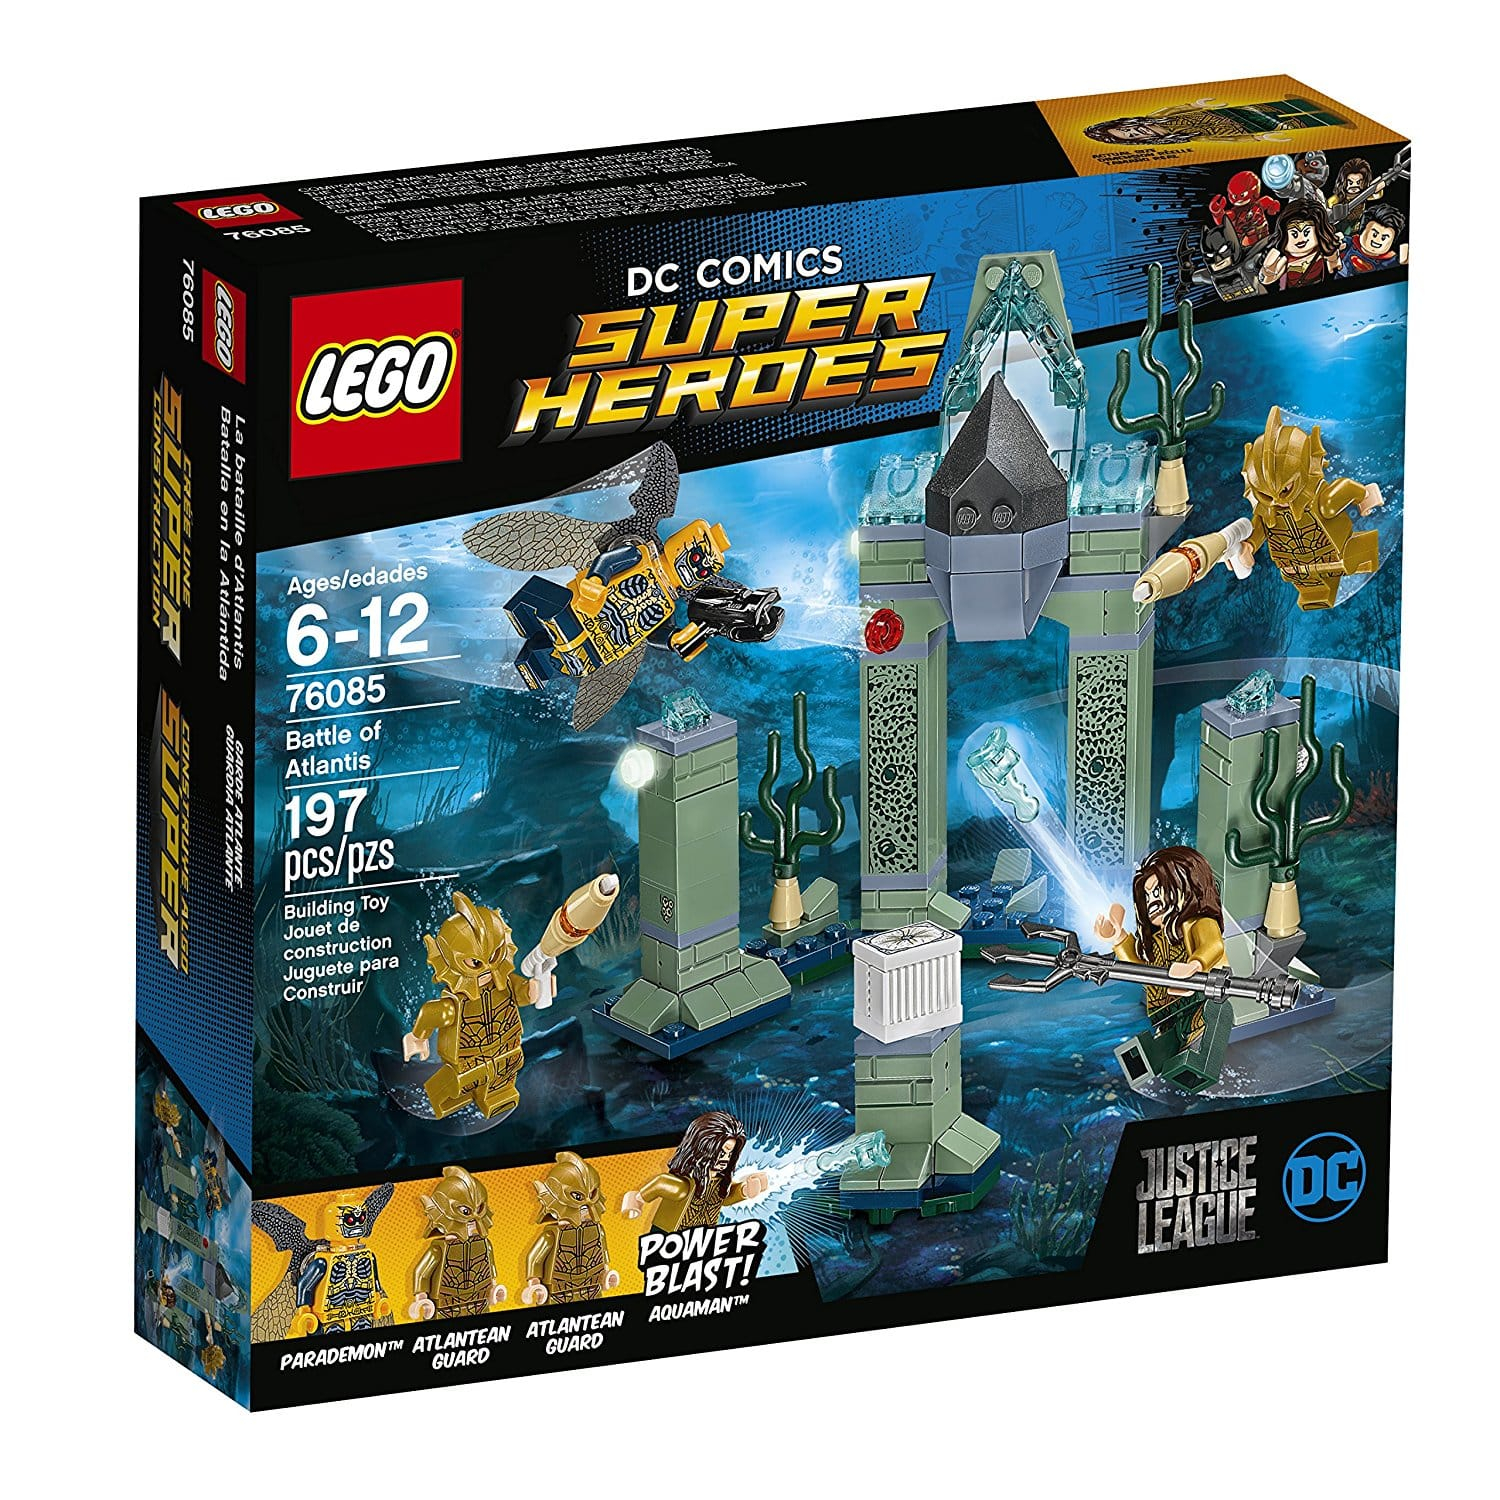 LEGO Super Heroes 76085 Battle of Atlantis (197 Piece) 40% off! $11.99